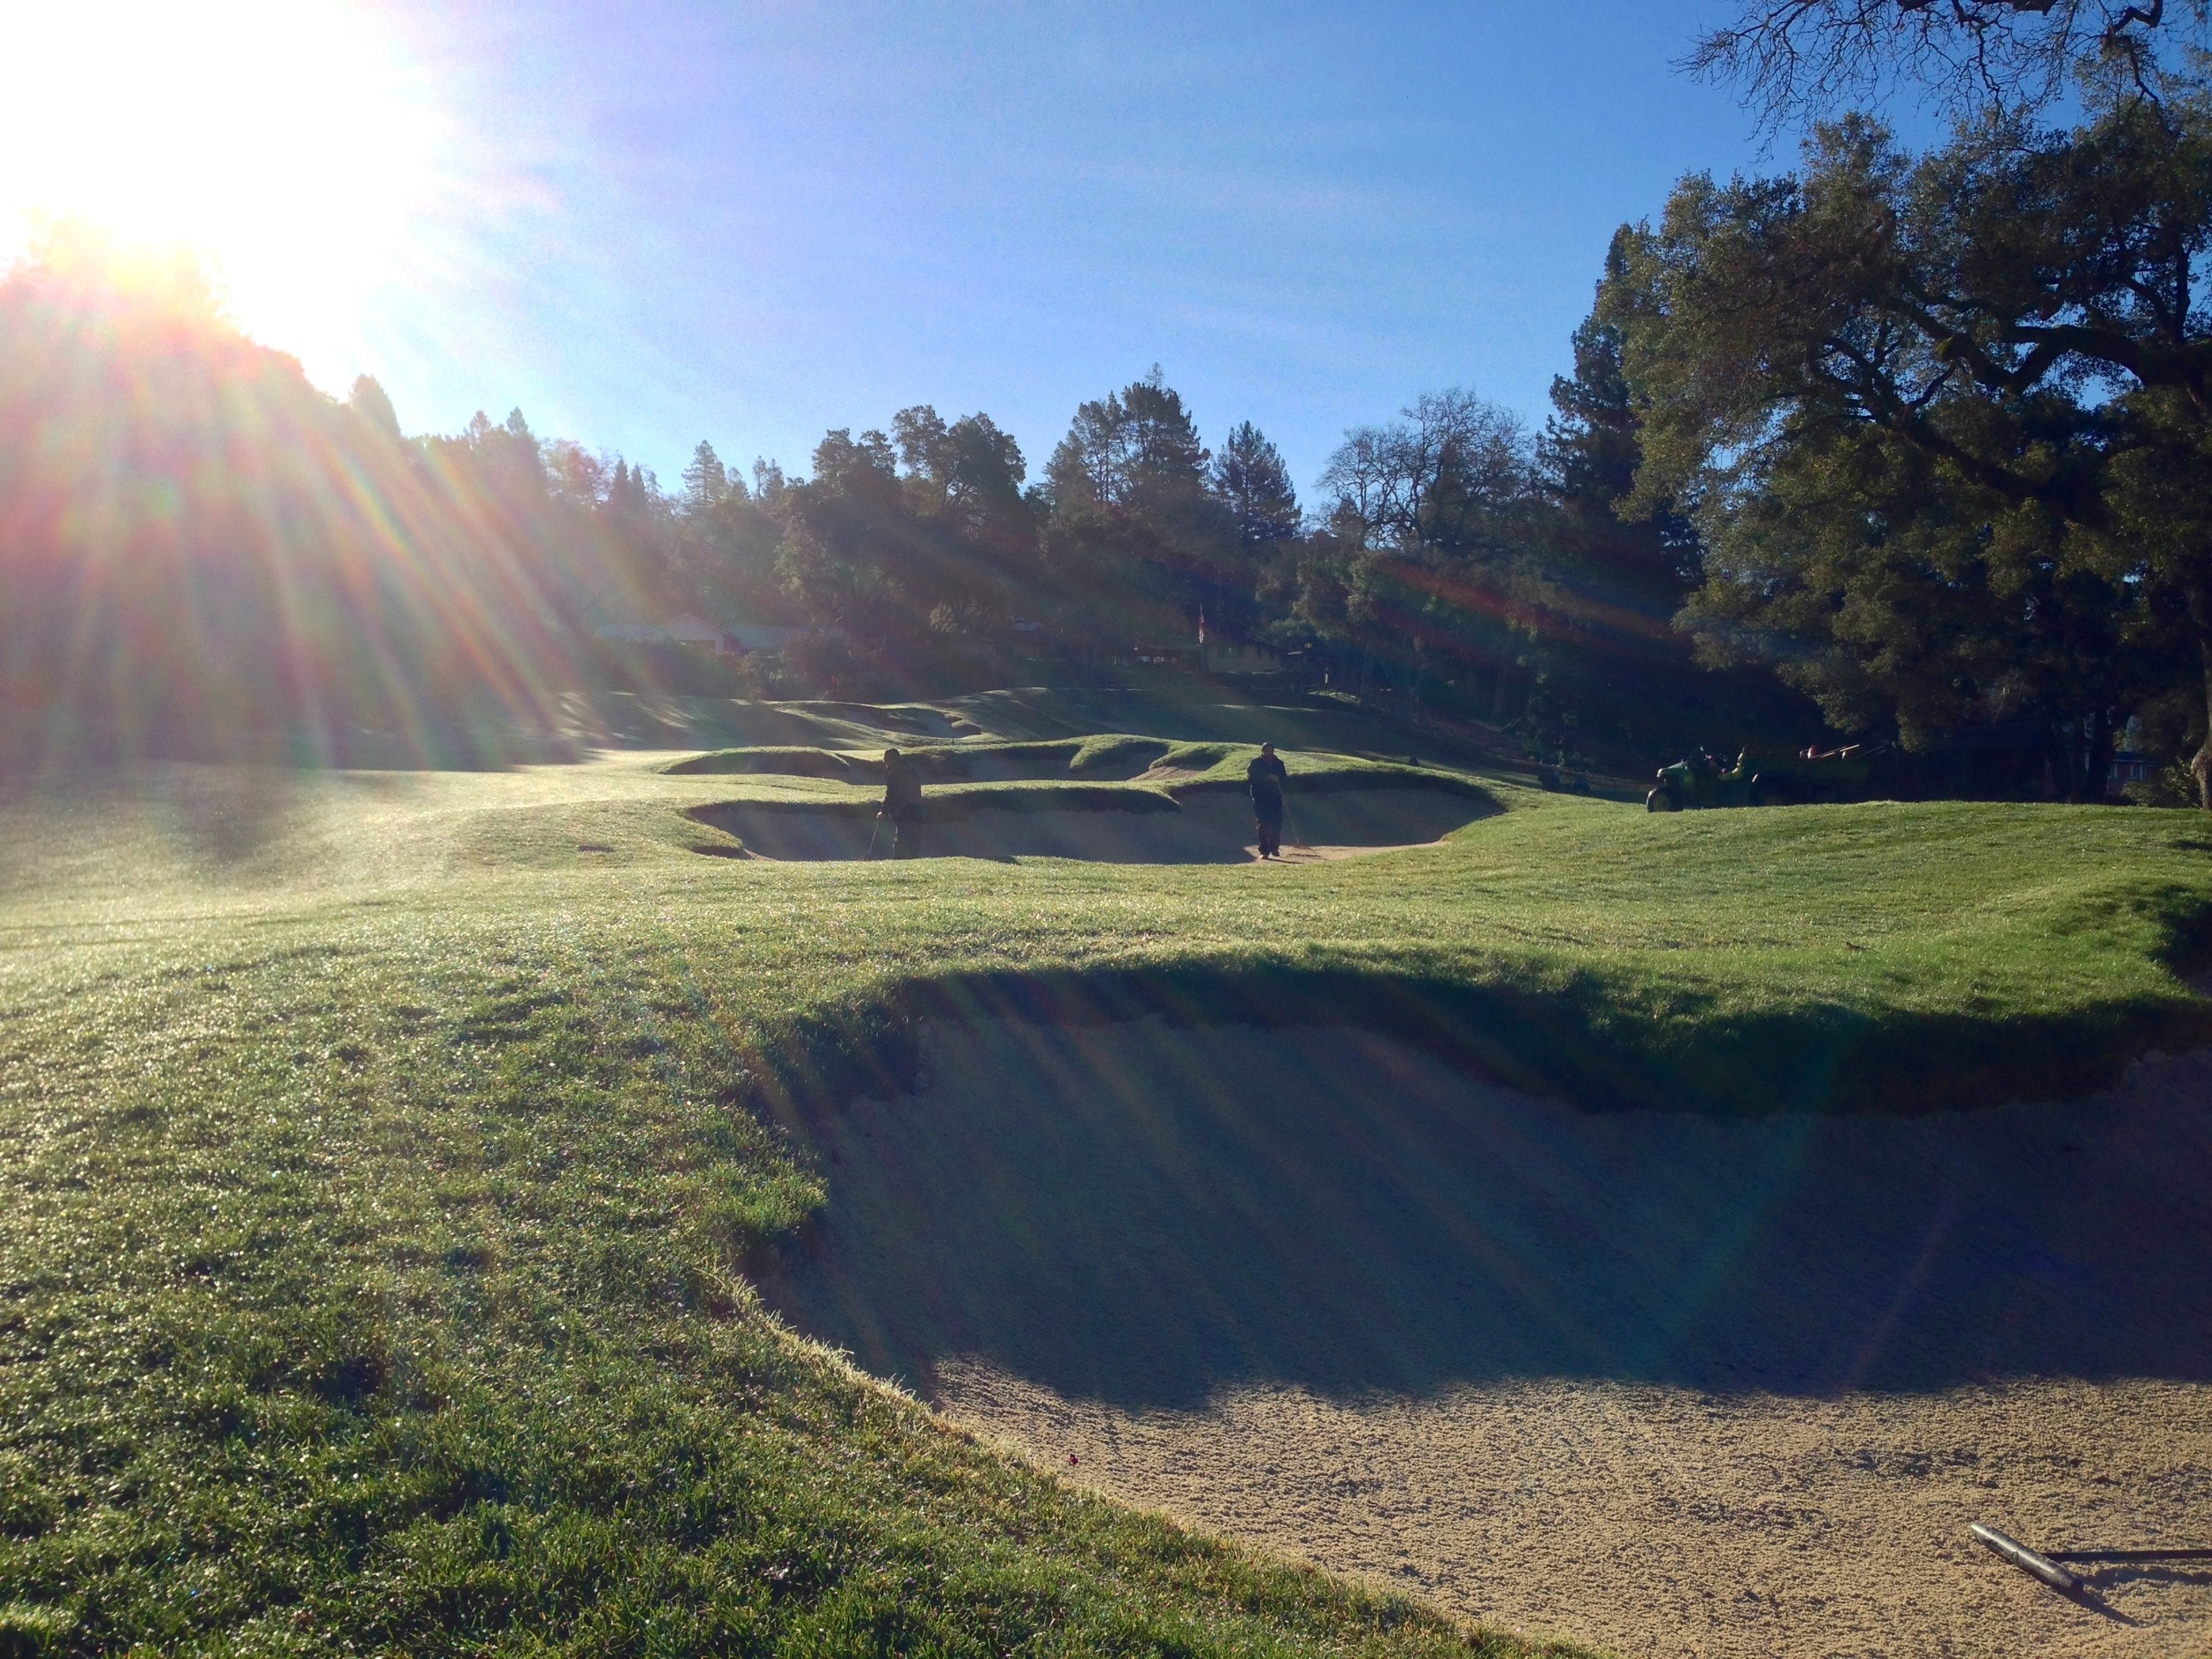 hochstein-design-orinda-cc-beforeafter-hole-7-3.jpg